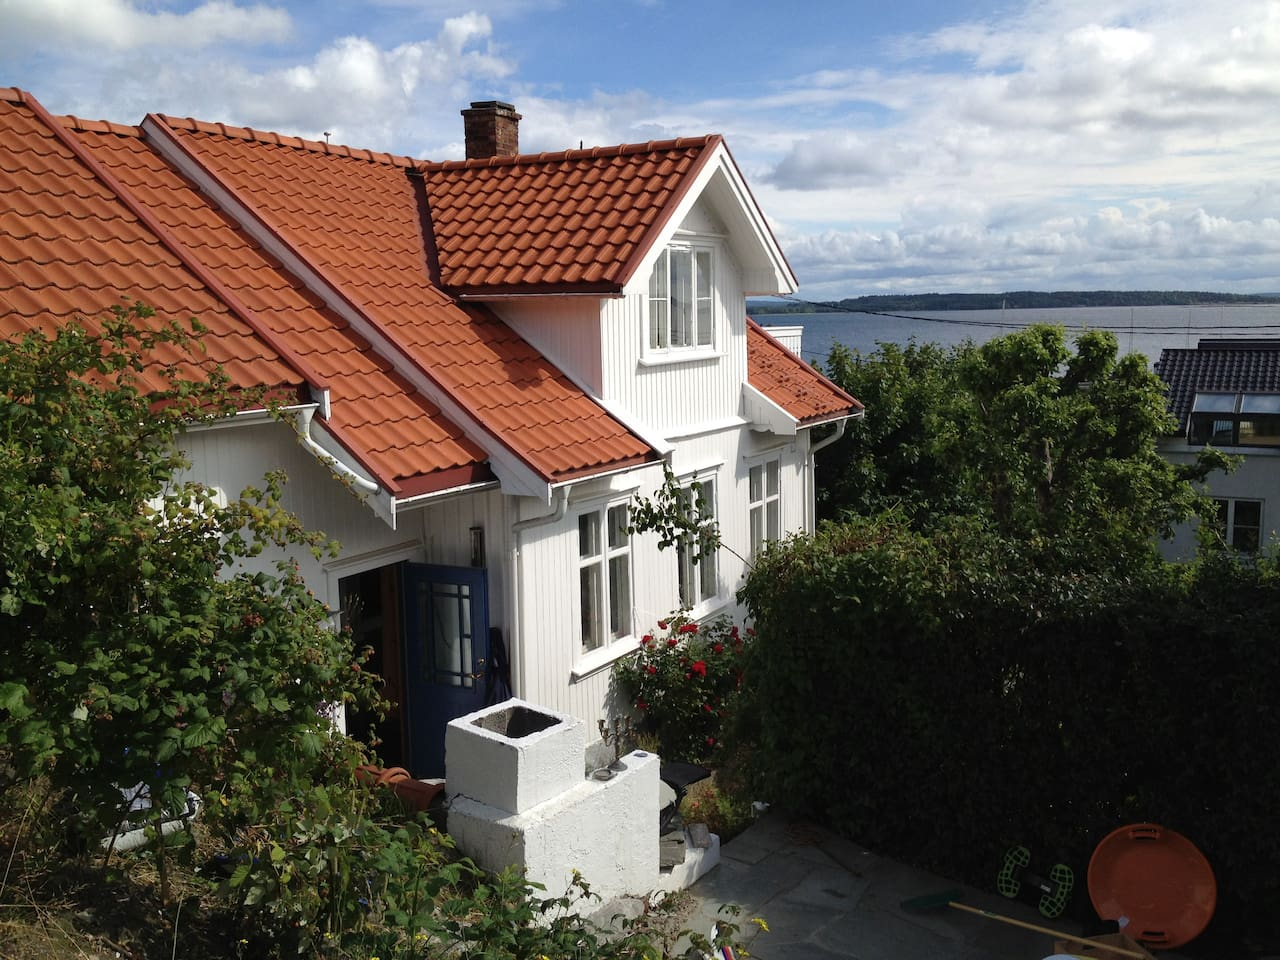 Wiew of the house from the upper level in the garden. The Oslo fjord in the background